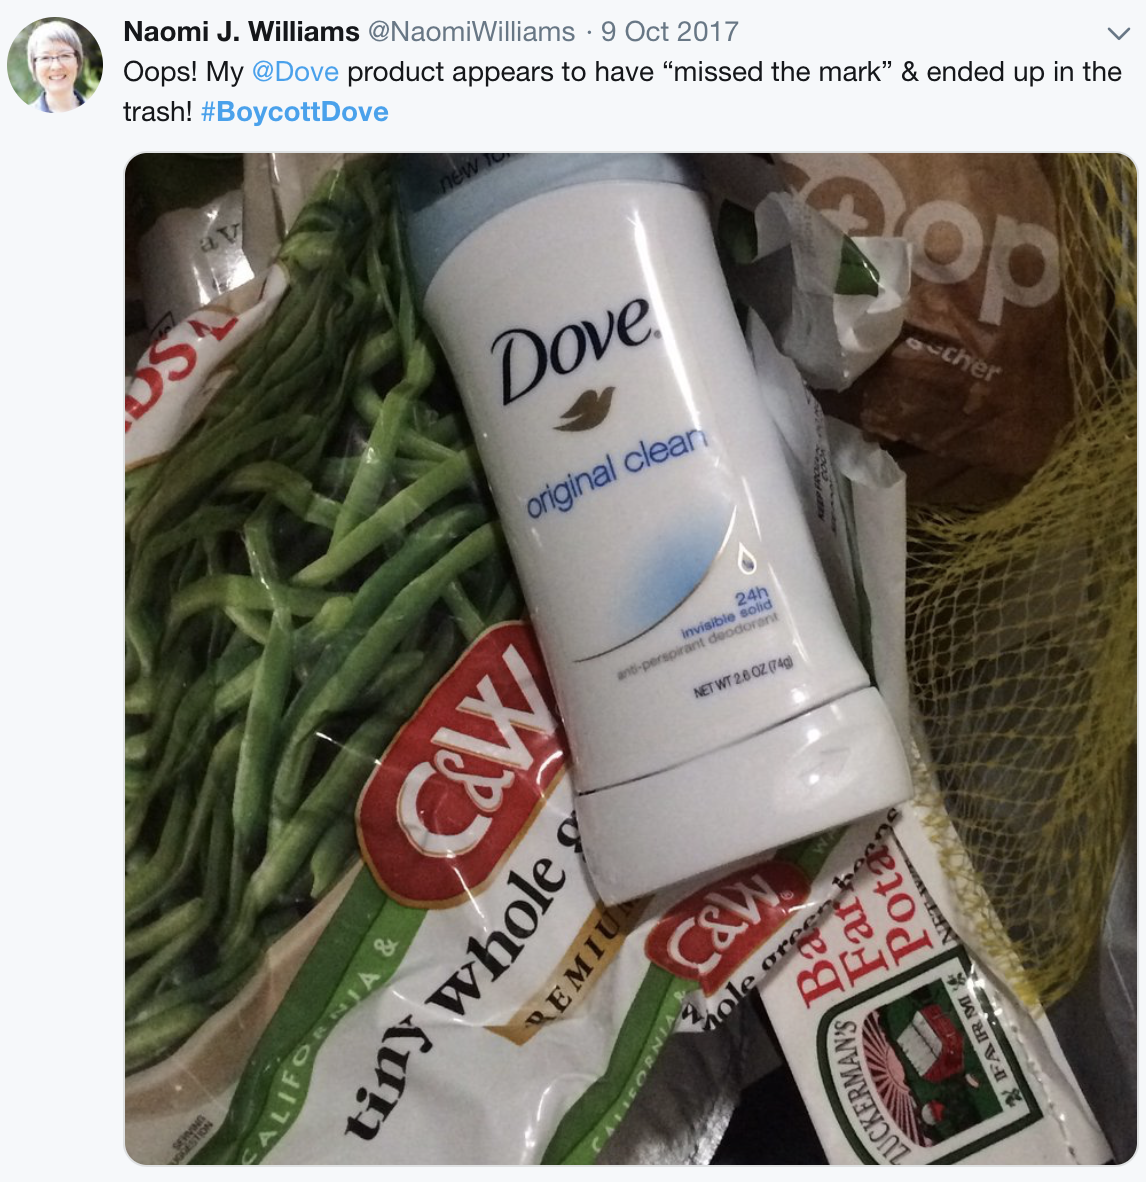 Apology response by Naomi J Williams: Oops! My @Dove product appears to have missed the mark & ended up in the trash! #BoycottDove